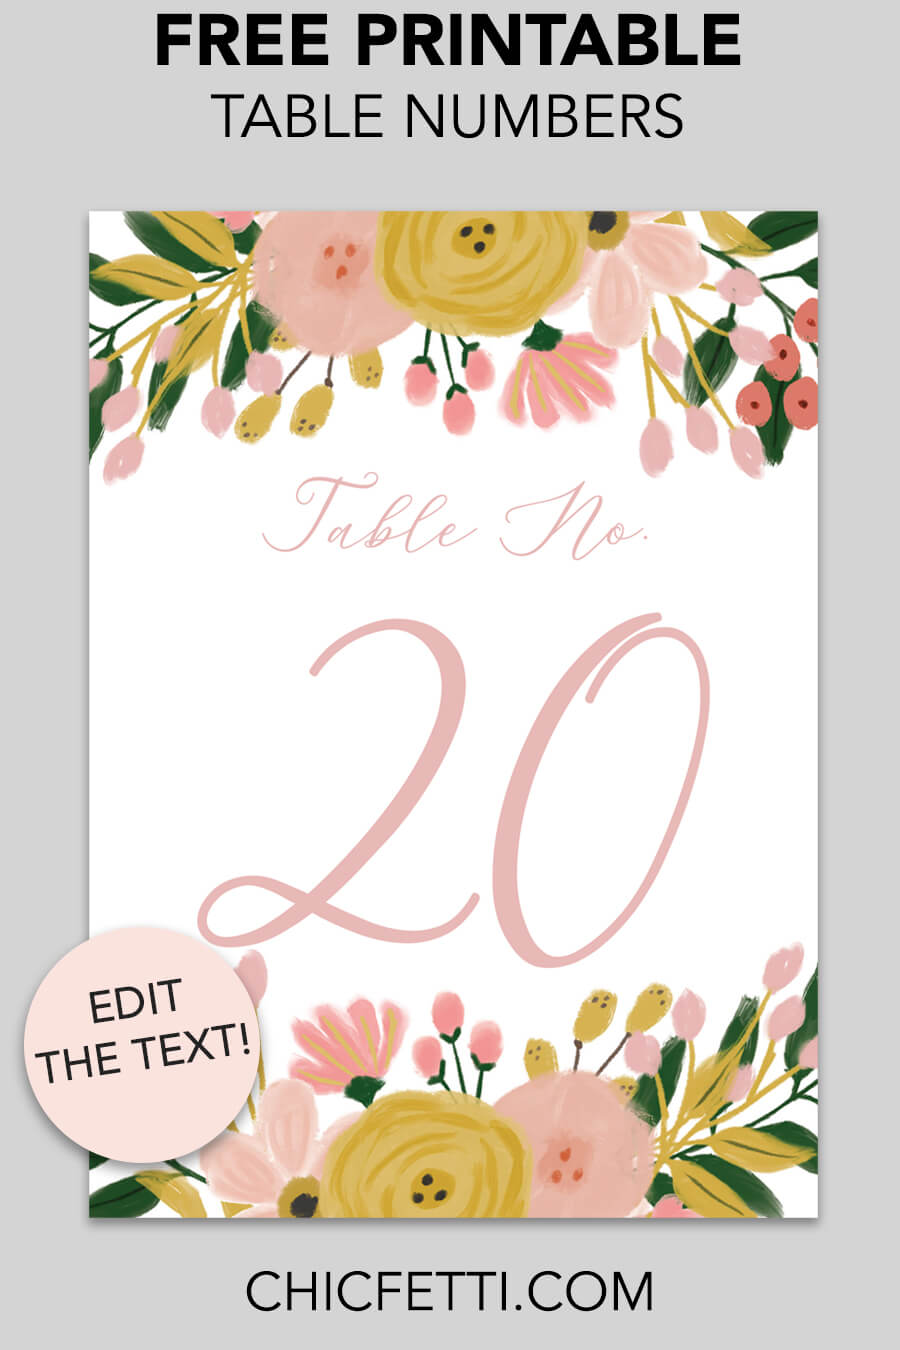 Free Printable Table Numbers - download and print these free printable table numbers for a wedding or party. #tablenumbers #weddingideas #partyideas #freeprintable #printable #weddings #parties